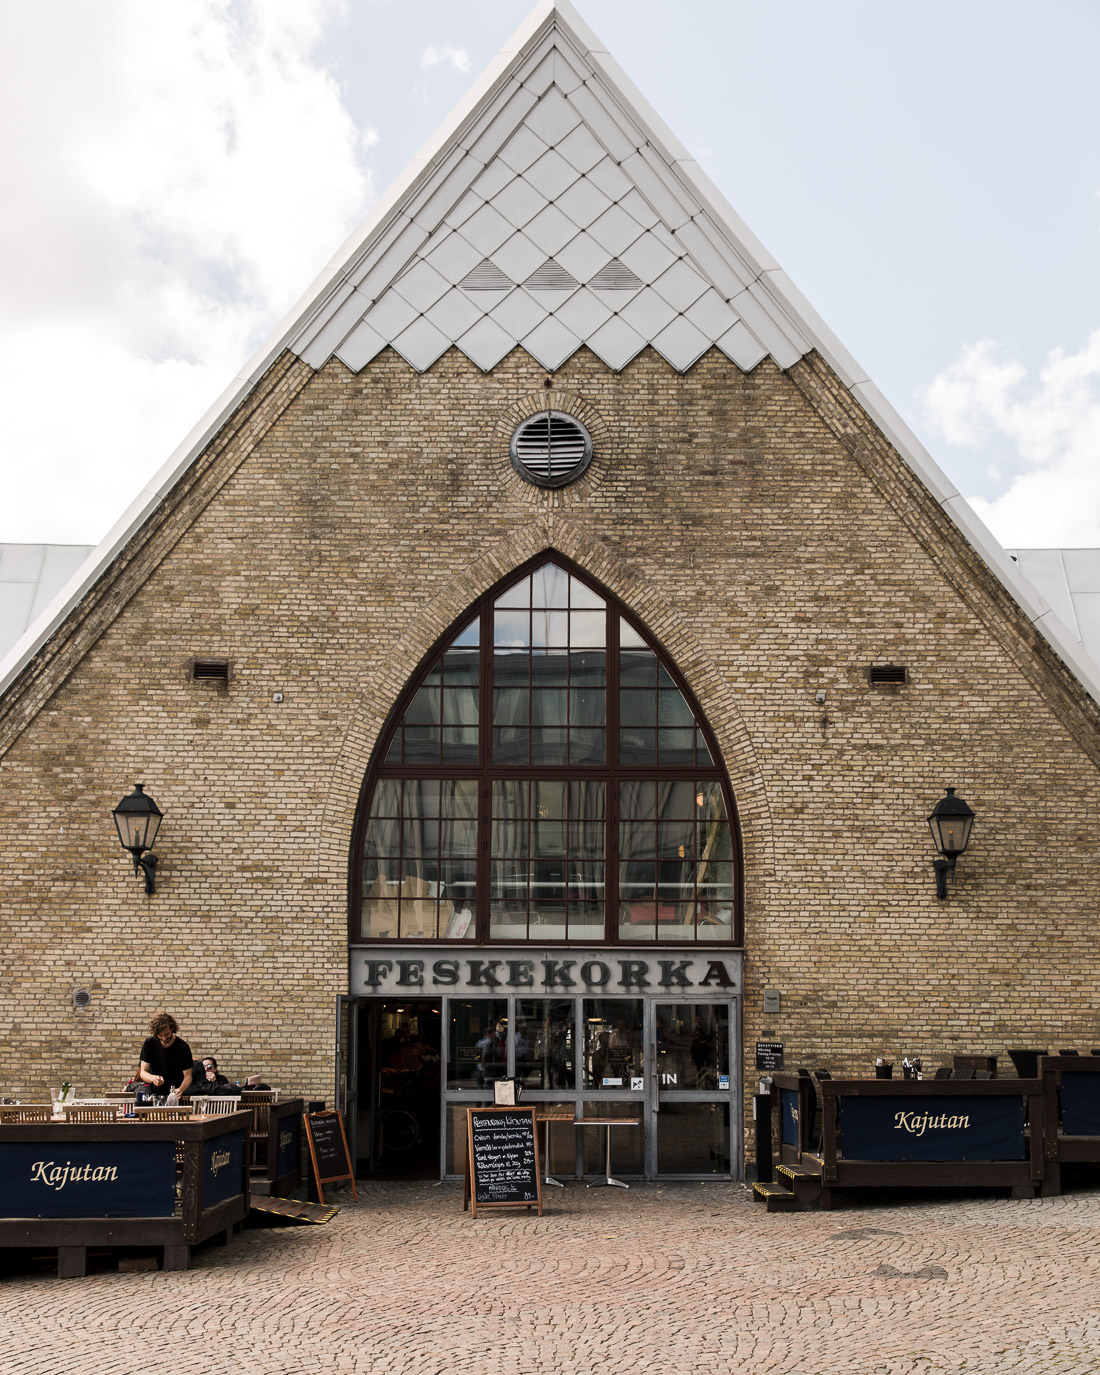 West Sweden: Food Stories. Feskekôrka Fish Church | Restaurant Gabriel | Gothenburg